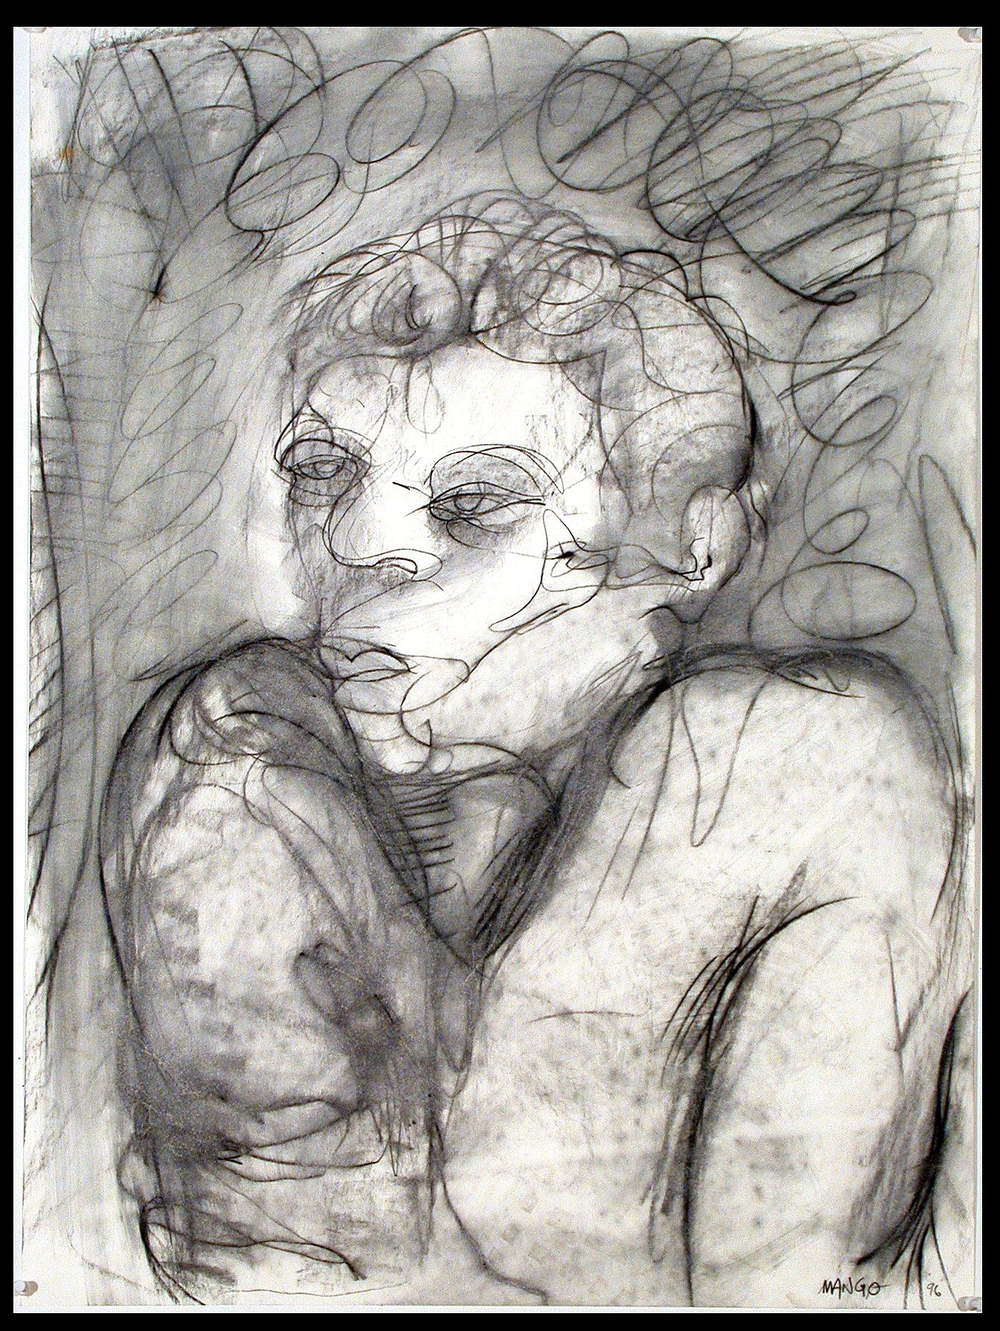 1996  24x18 in  Graphite on canvas